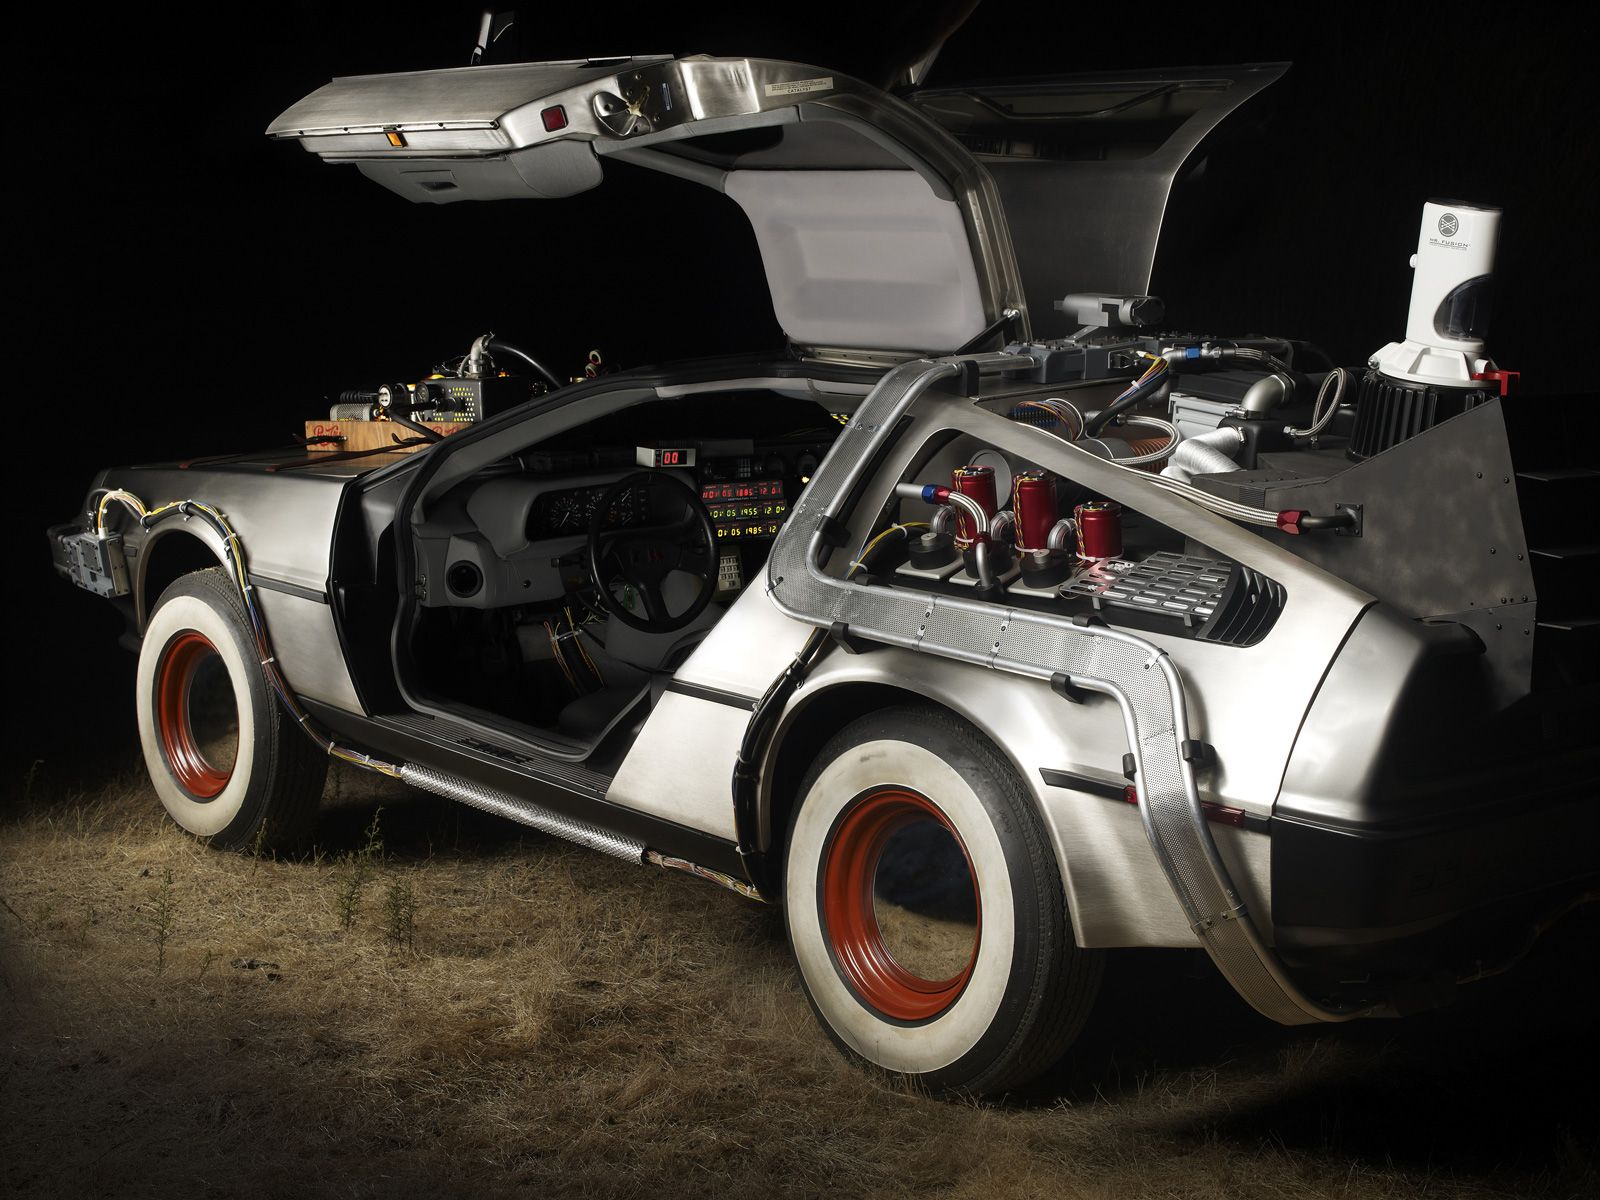 DeLorean DMC-12 time machine with the whitewall tires from ...